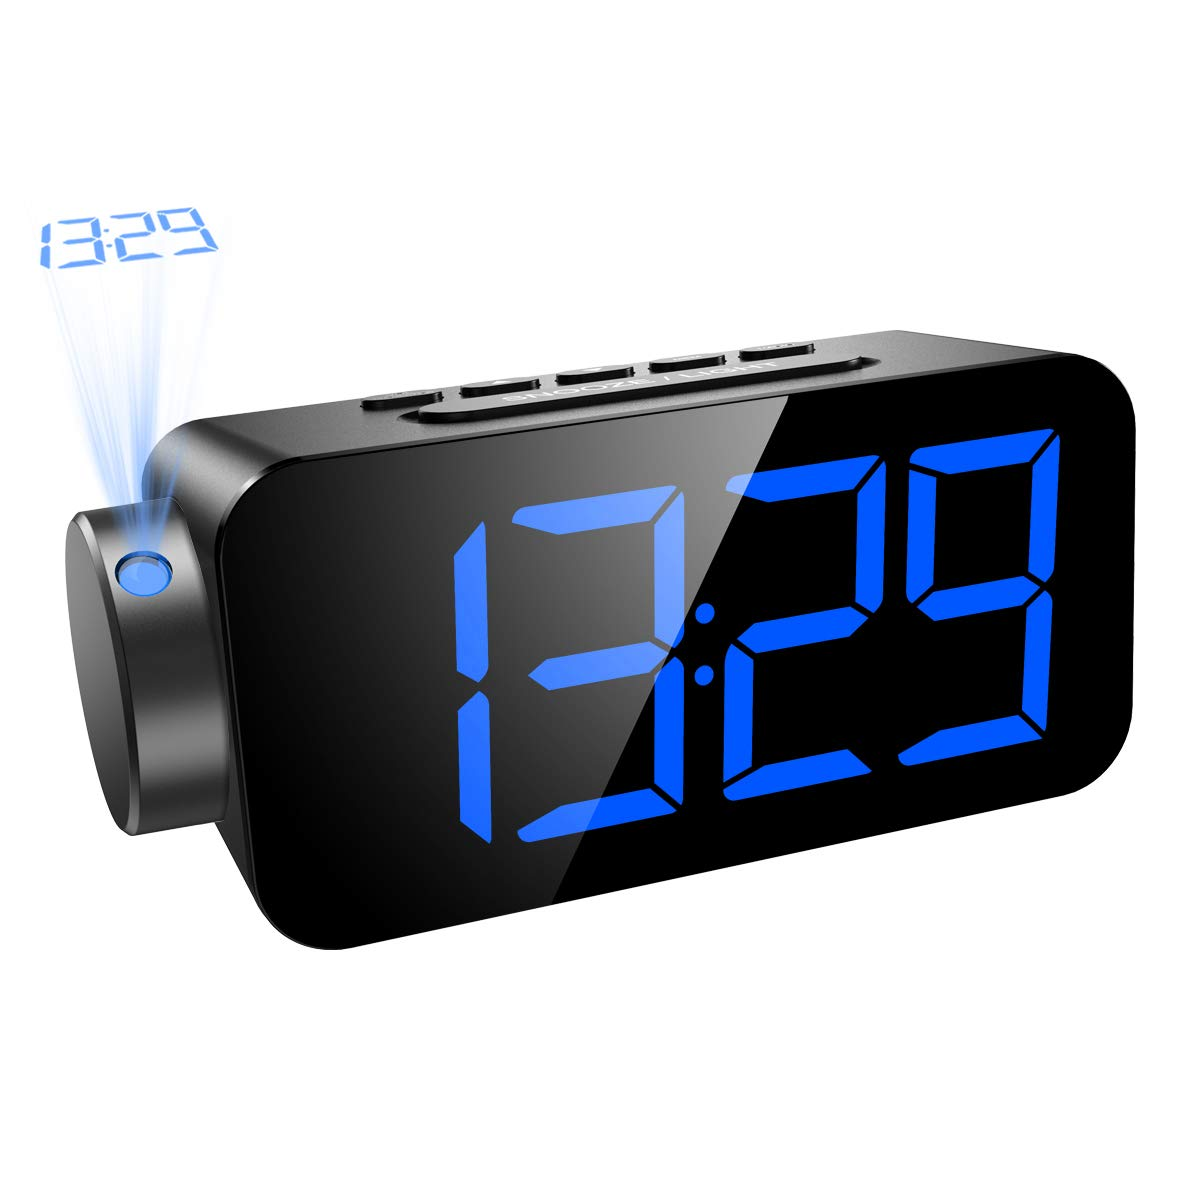 AMIR Alarm Clock, FM Radio with Projection Clock for Bedrooms, Large Digital LED Screen Display with Dimmer, Sleep Timer and Snooze Function, USB Charging Port, Battery Backup for Power Failure